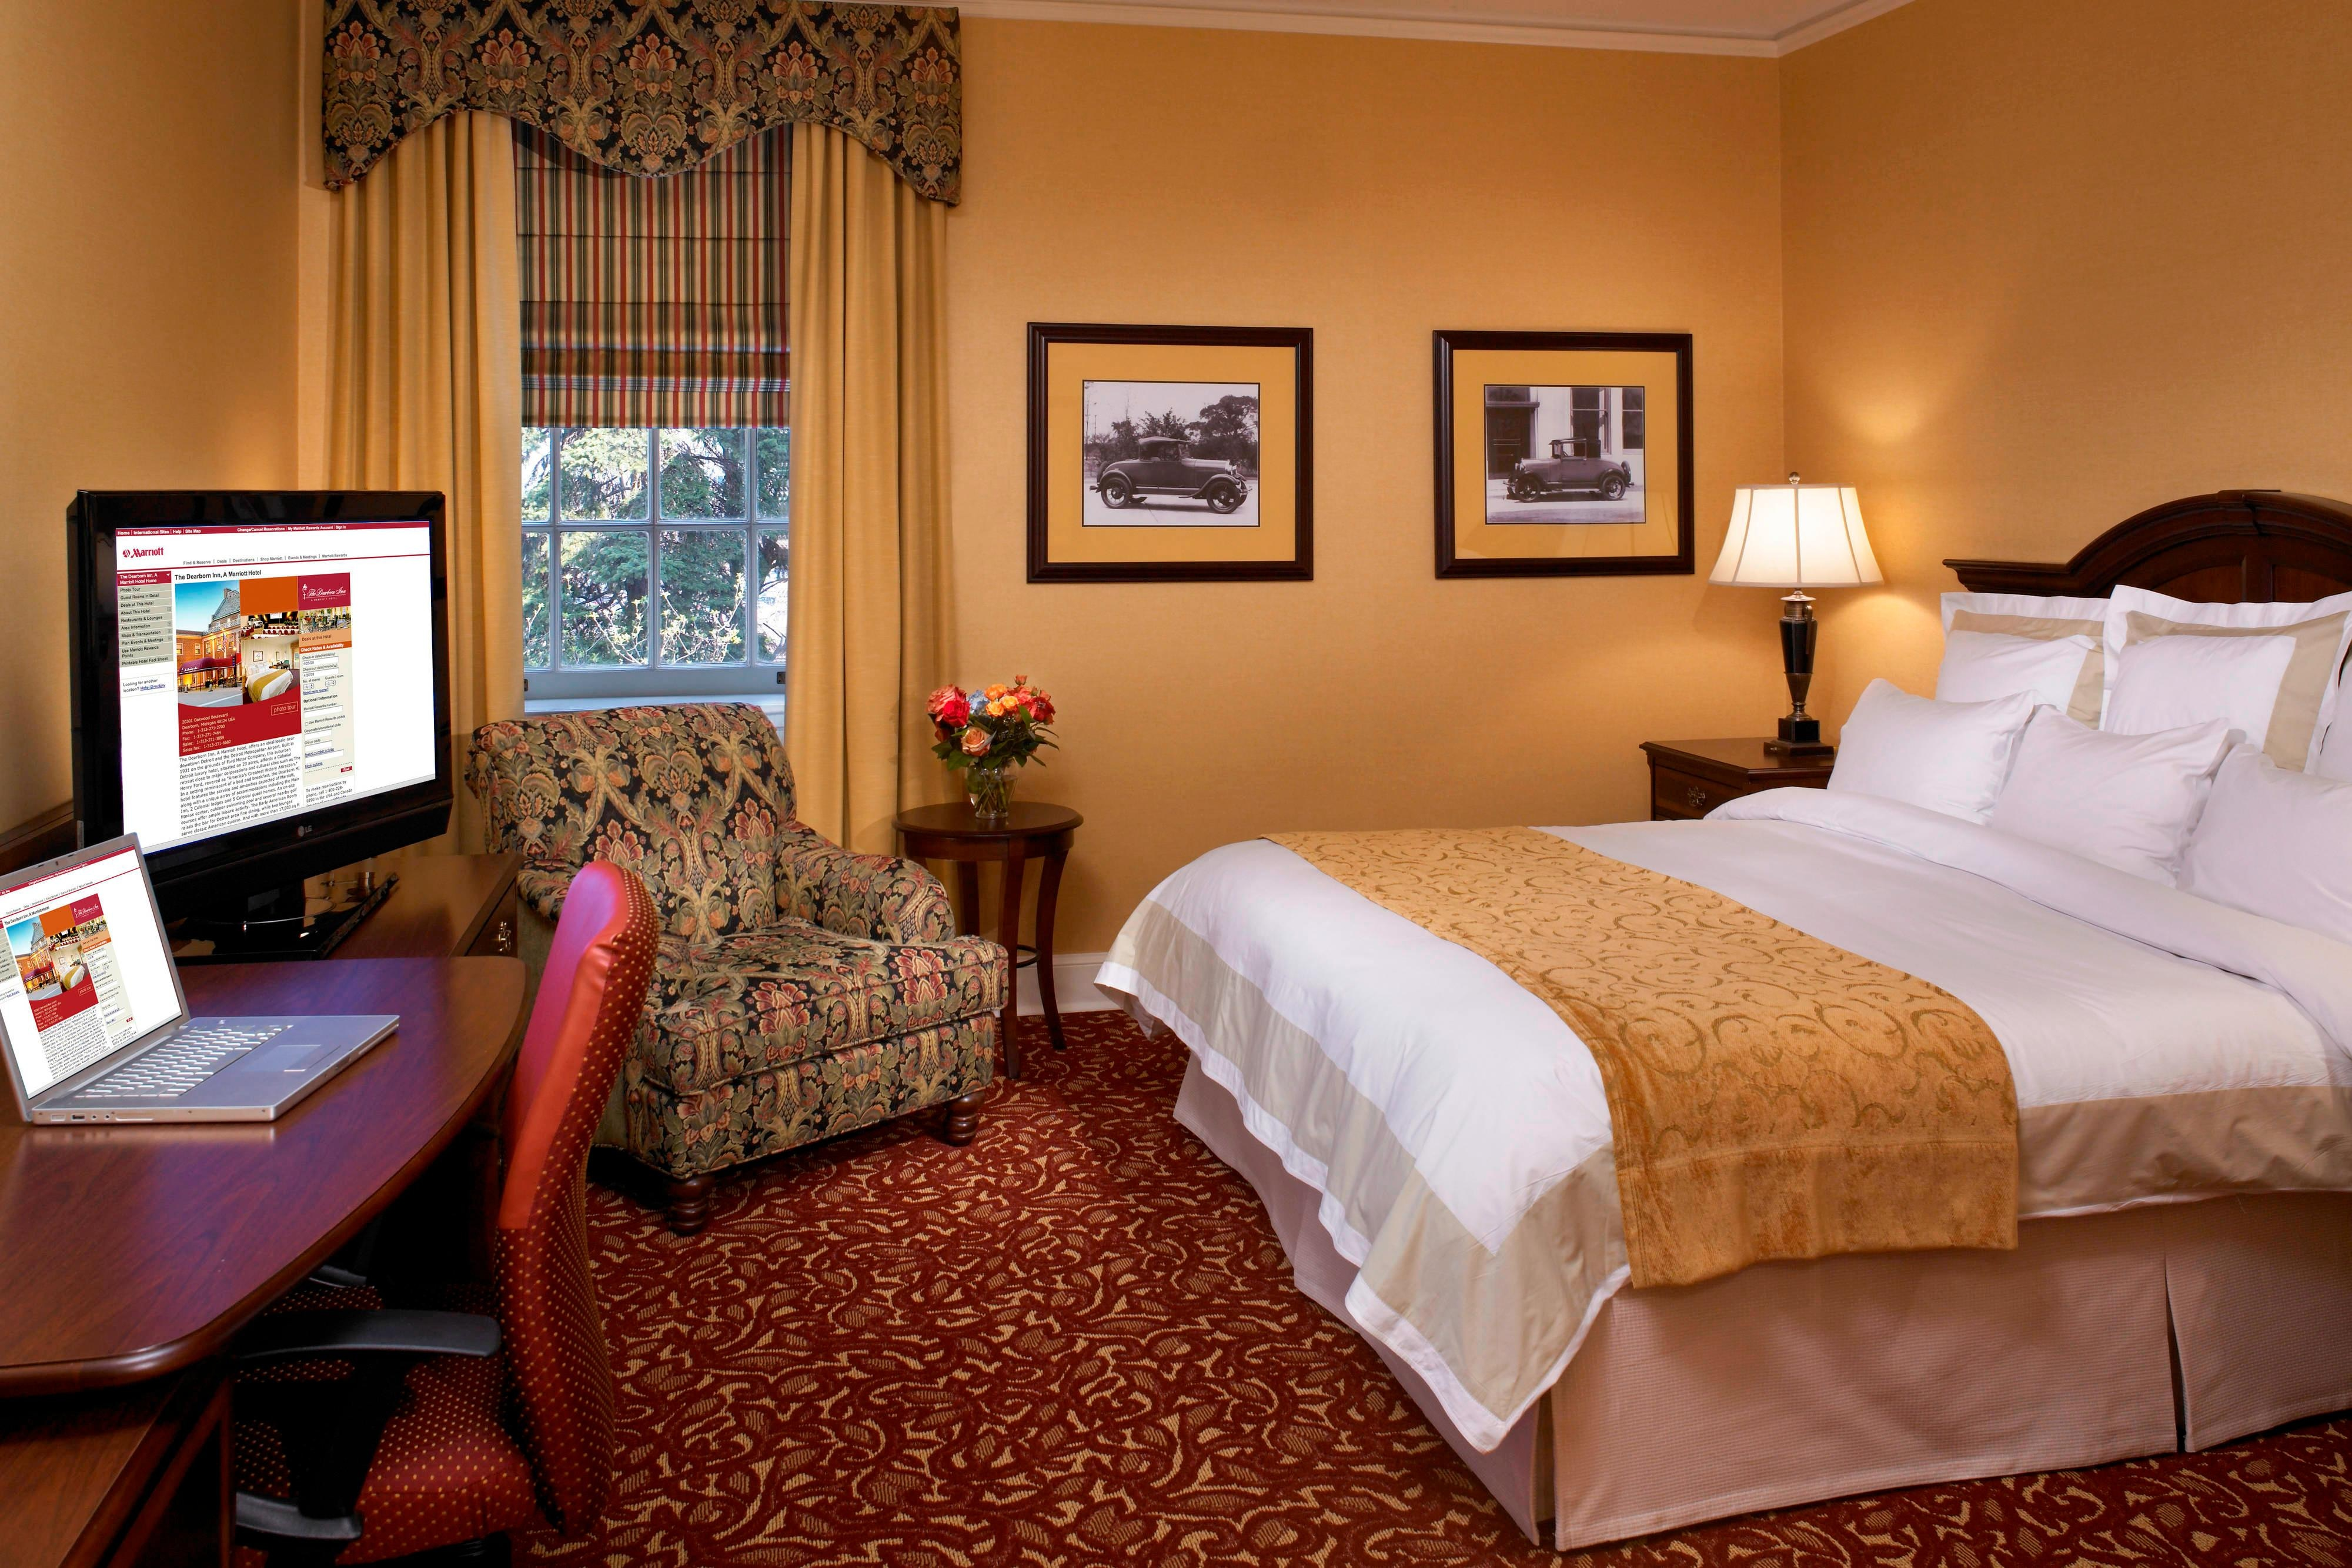 Dearborn Hotel Room